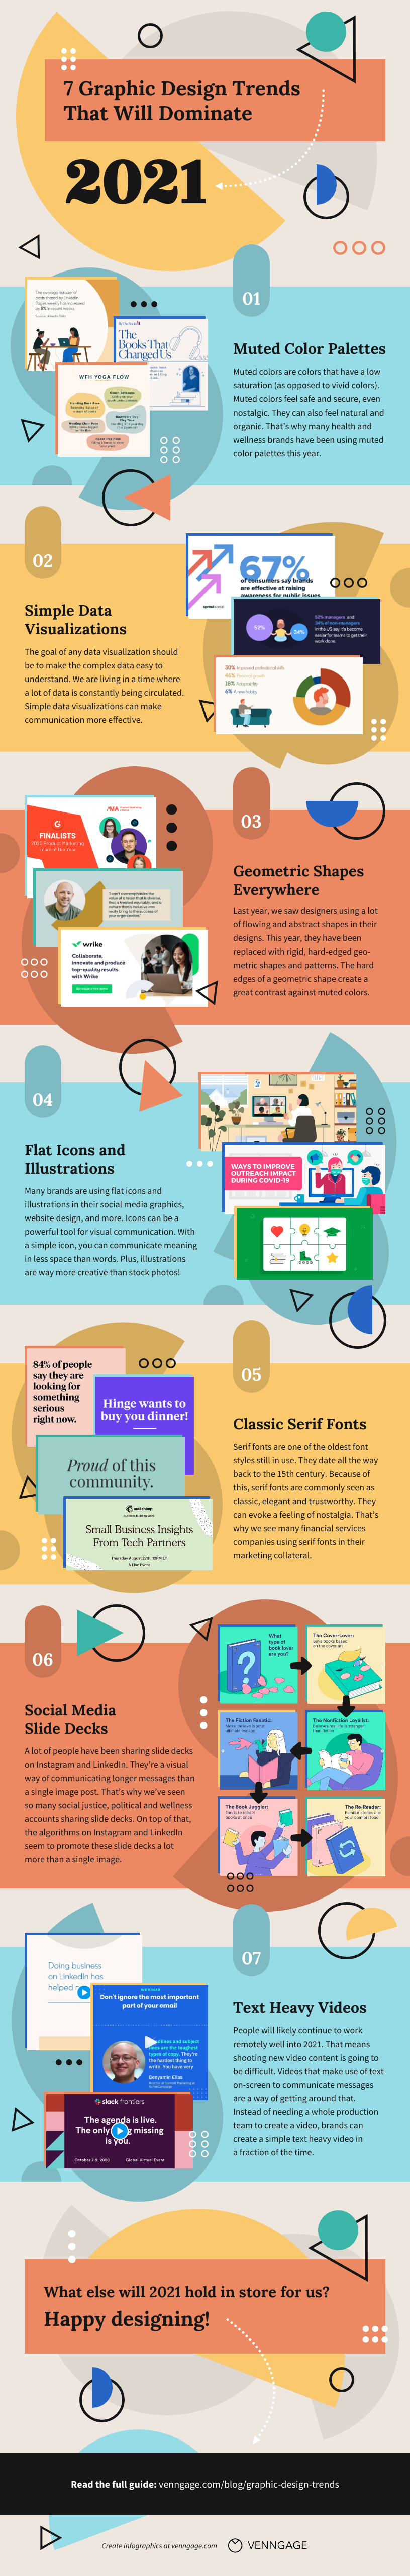 Graphic_Design_Trends_2021_Infographic